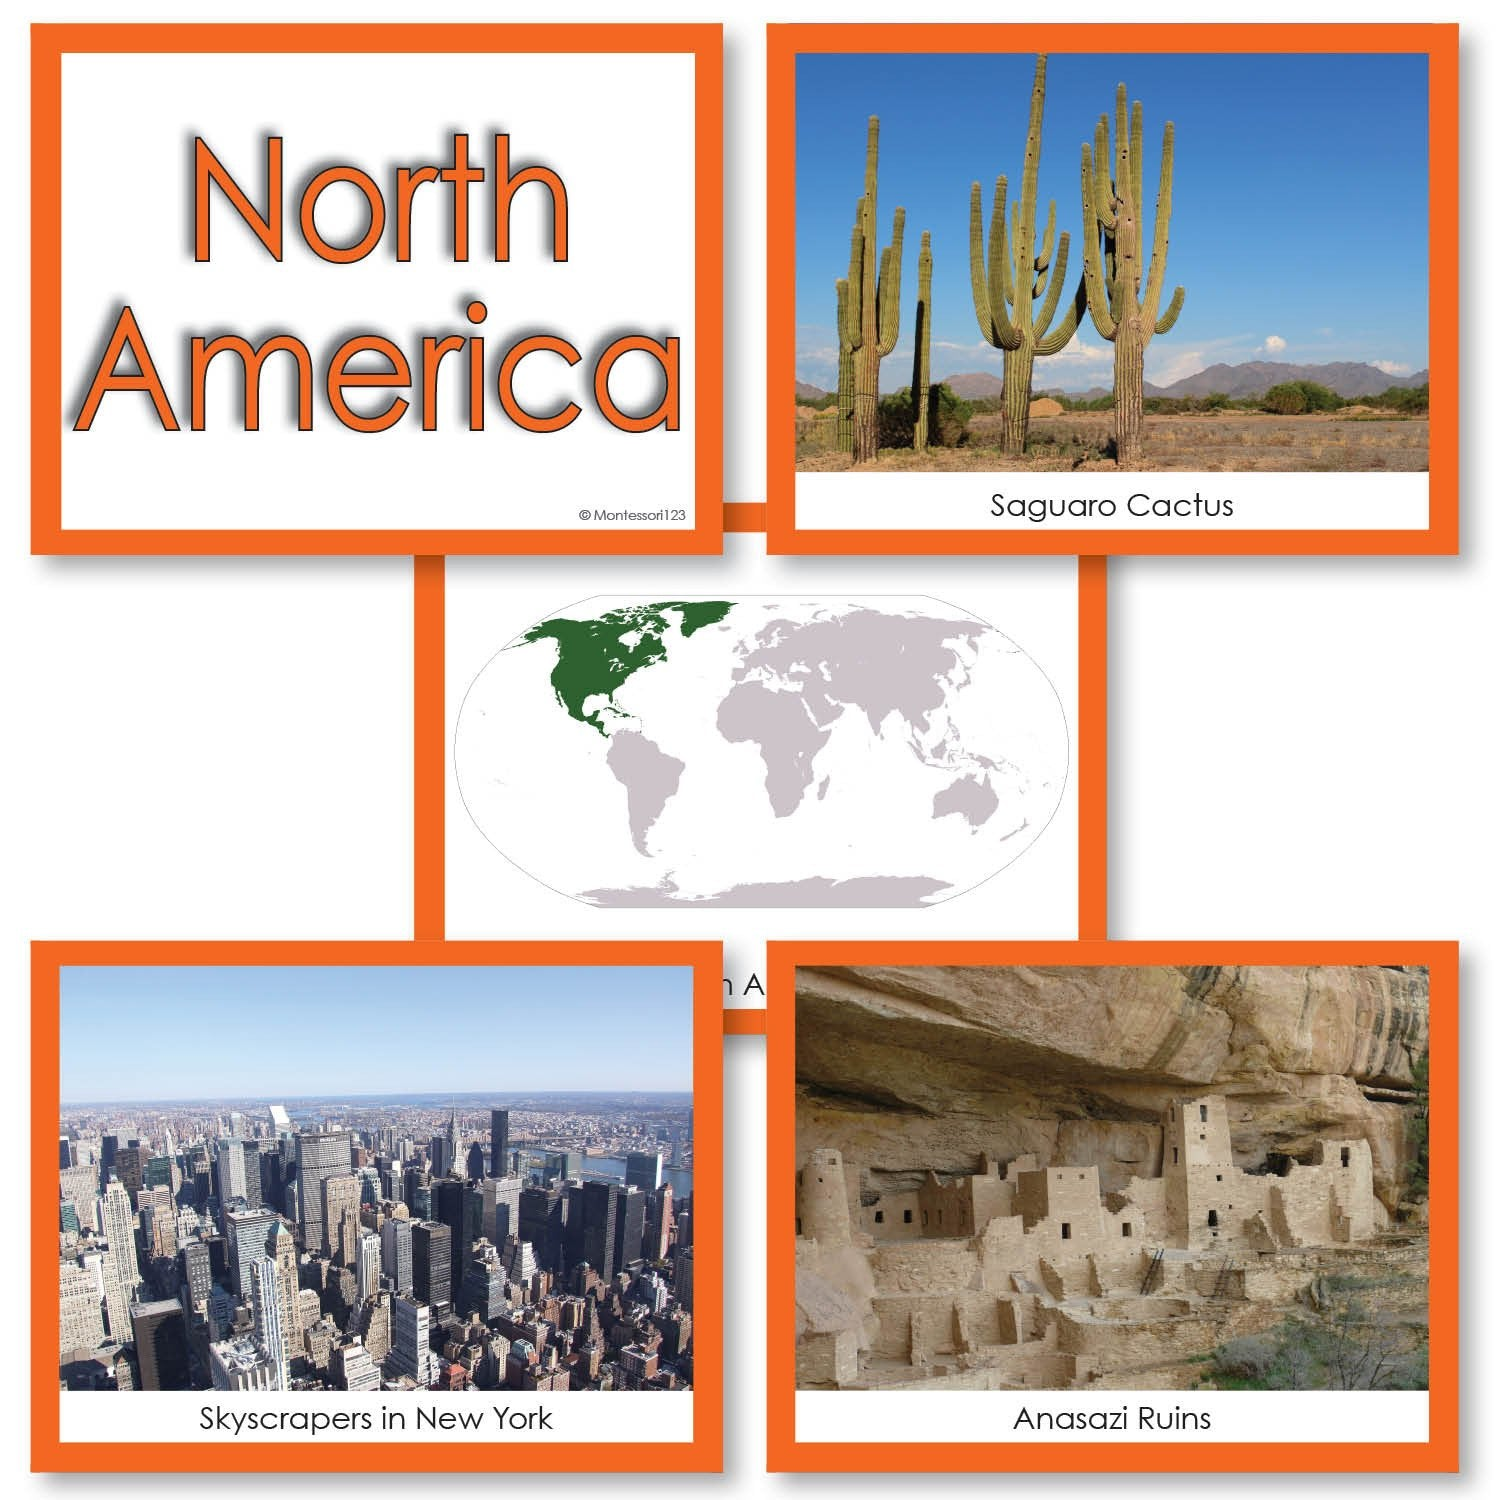 Geography Material-Study Of World Geography - Image Folder Of The Continent North America